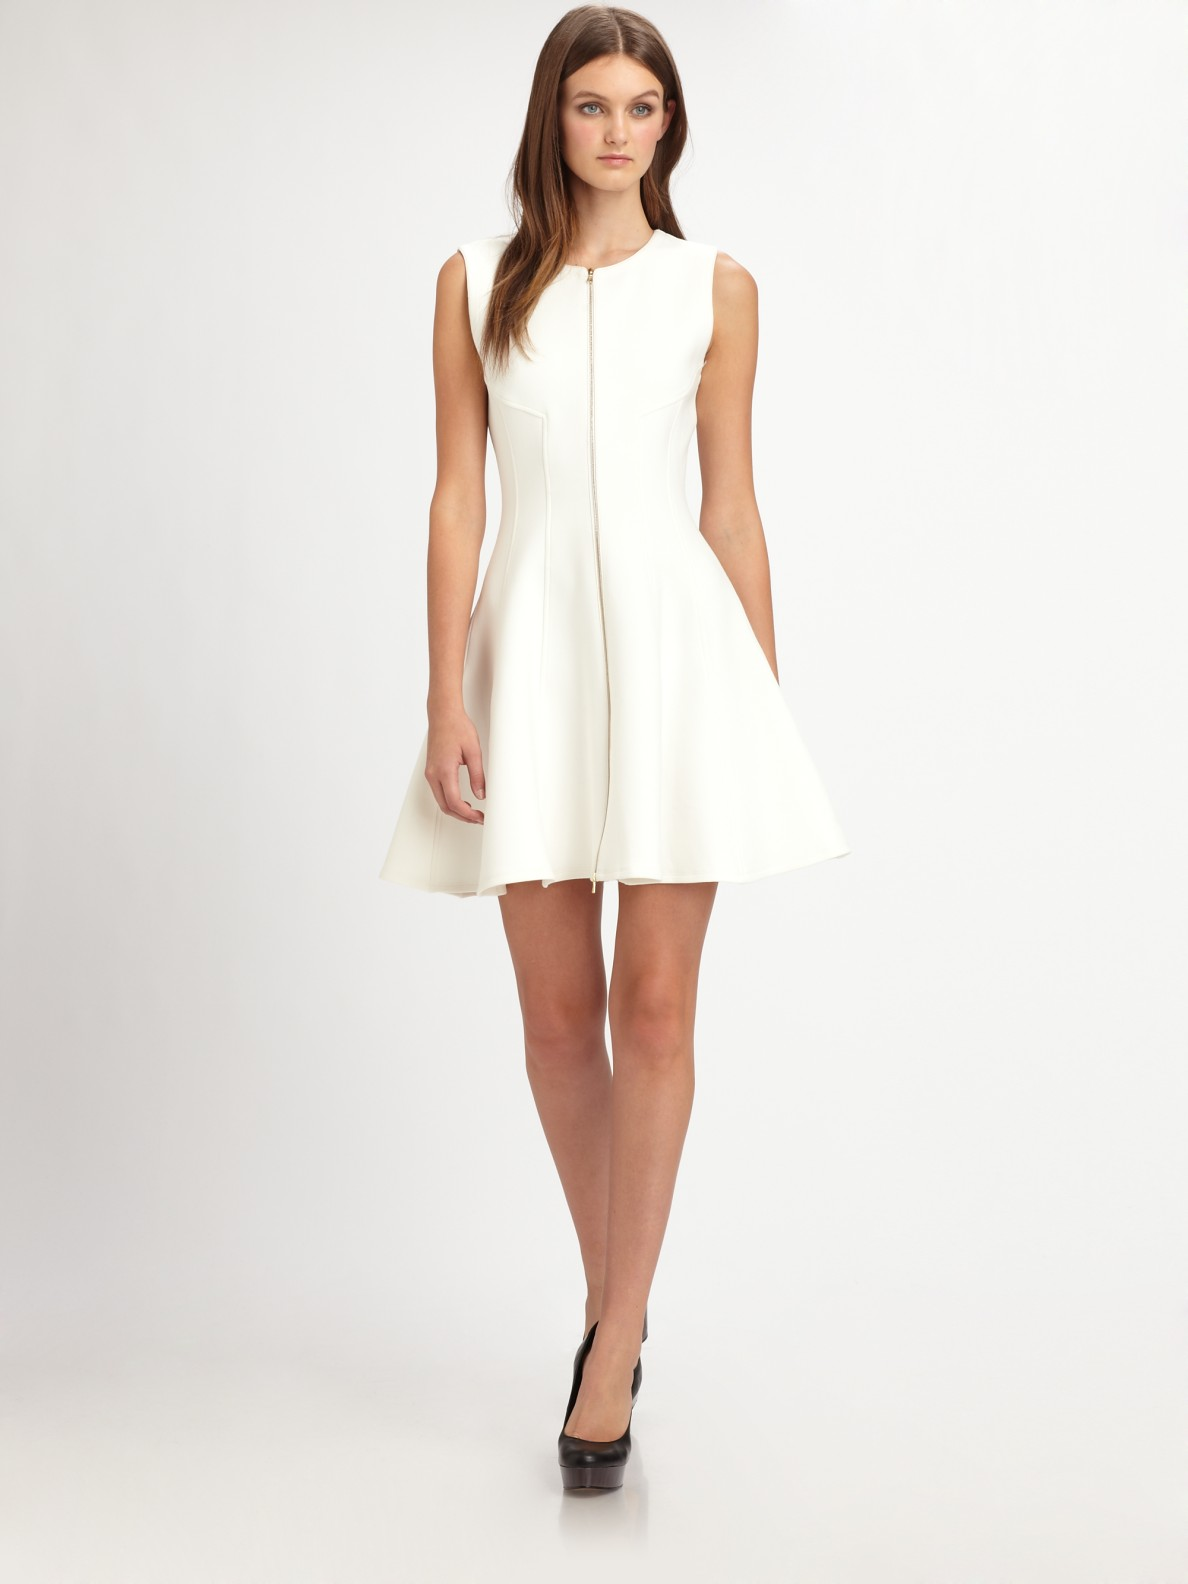 Theory White Dress